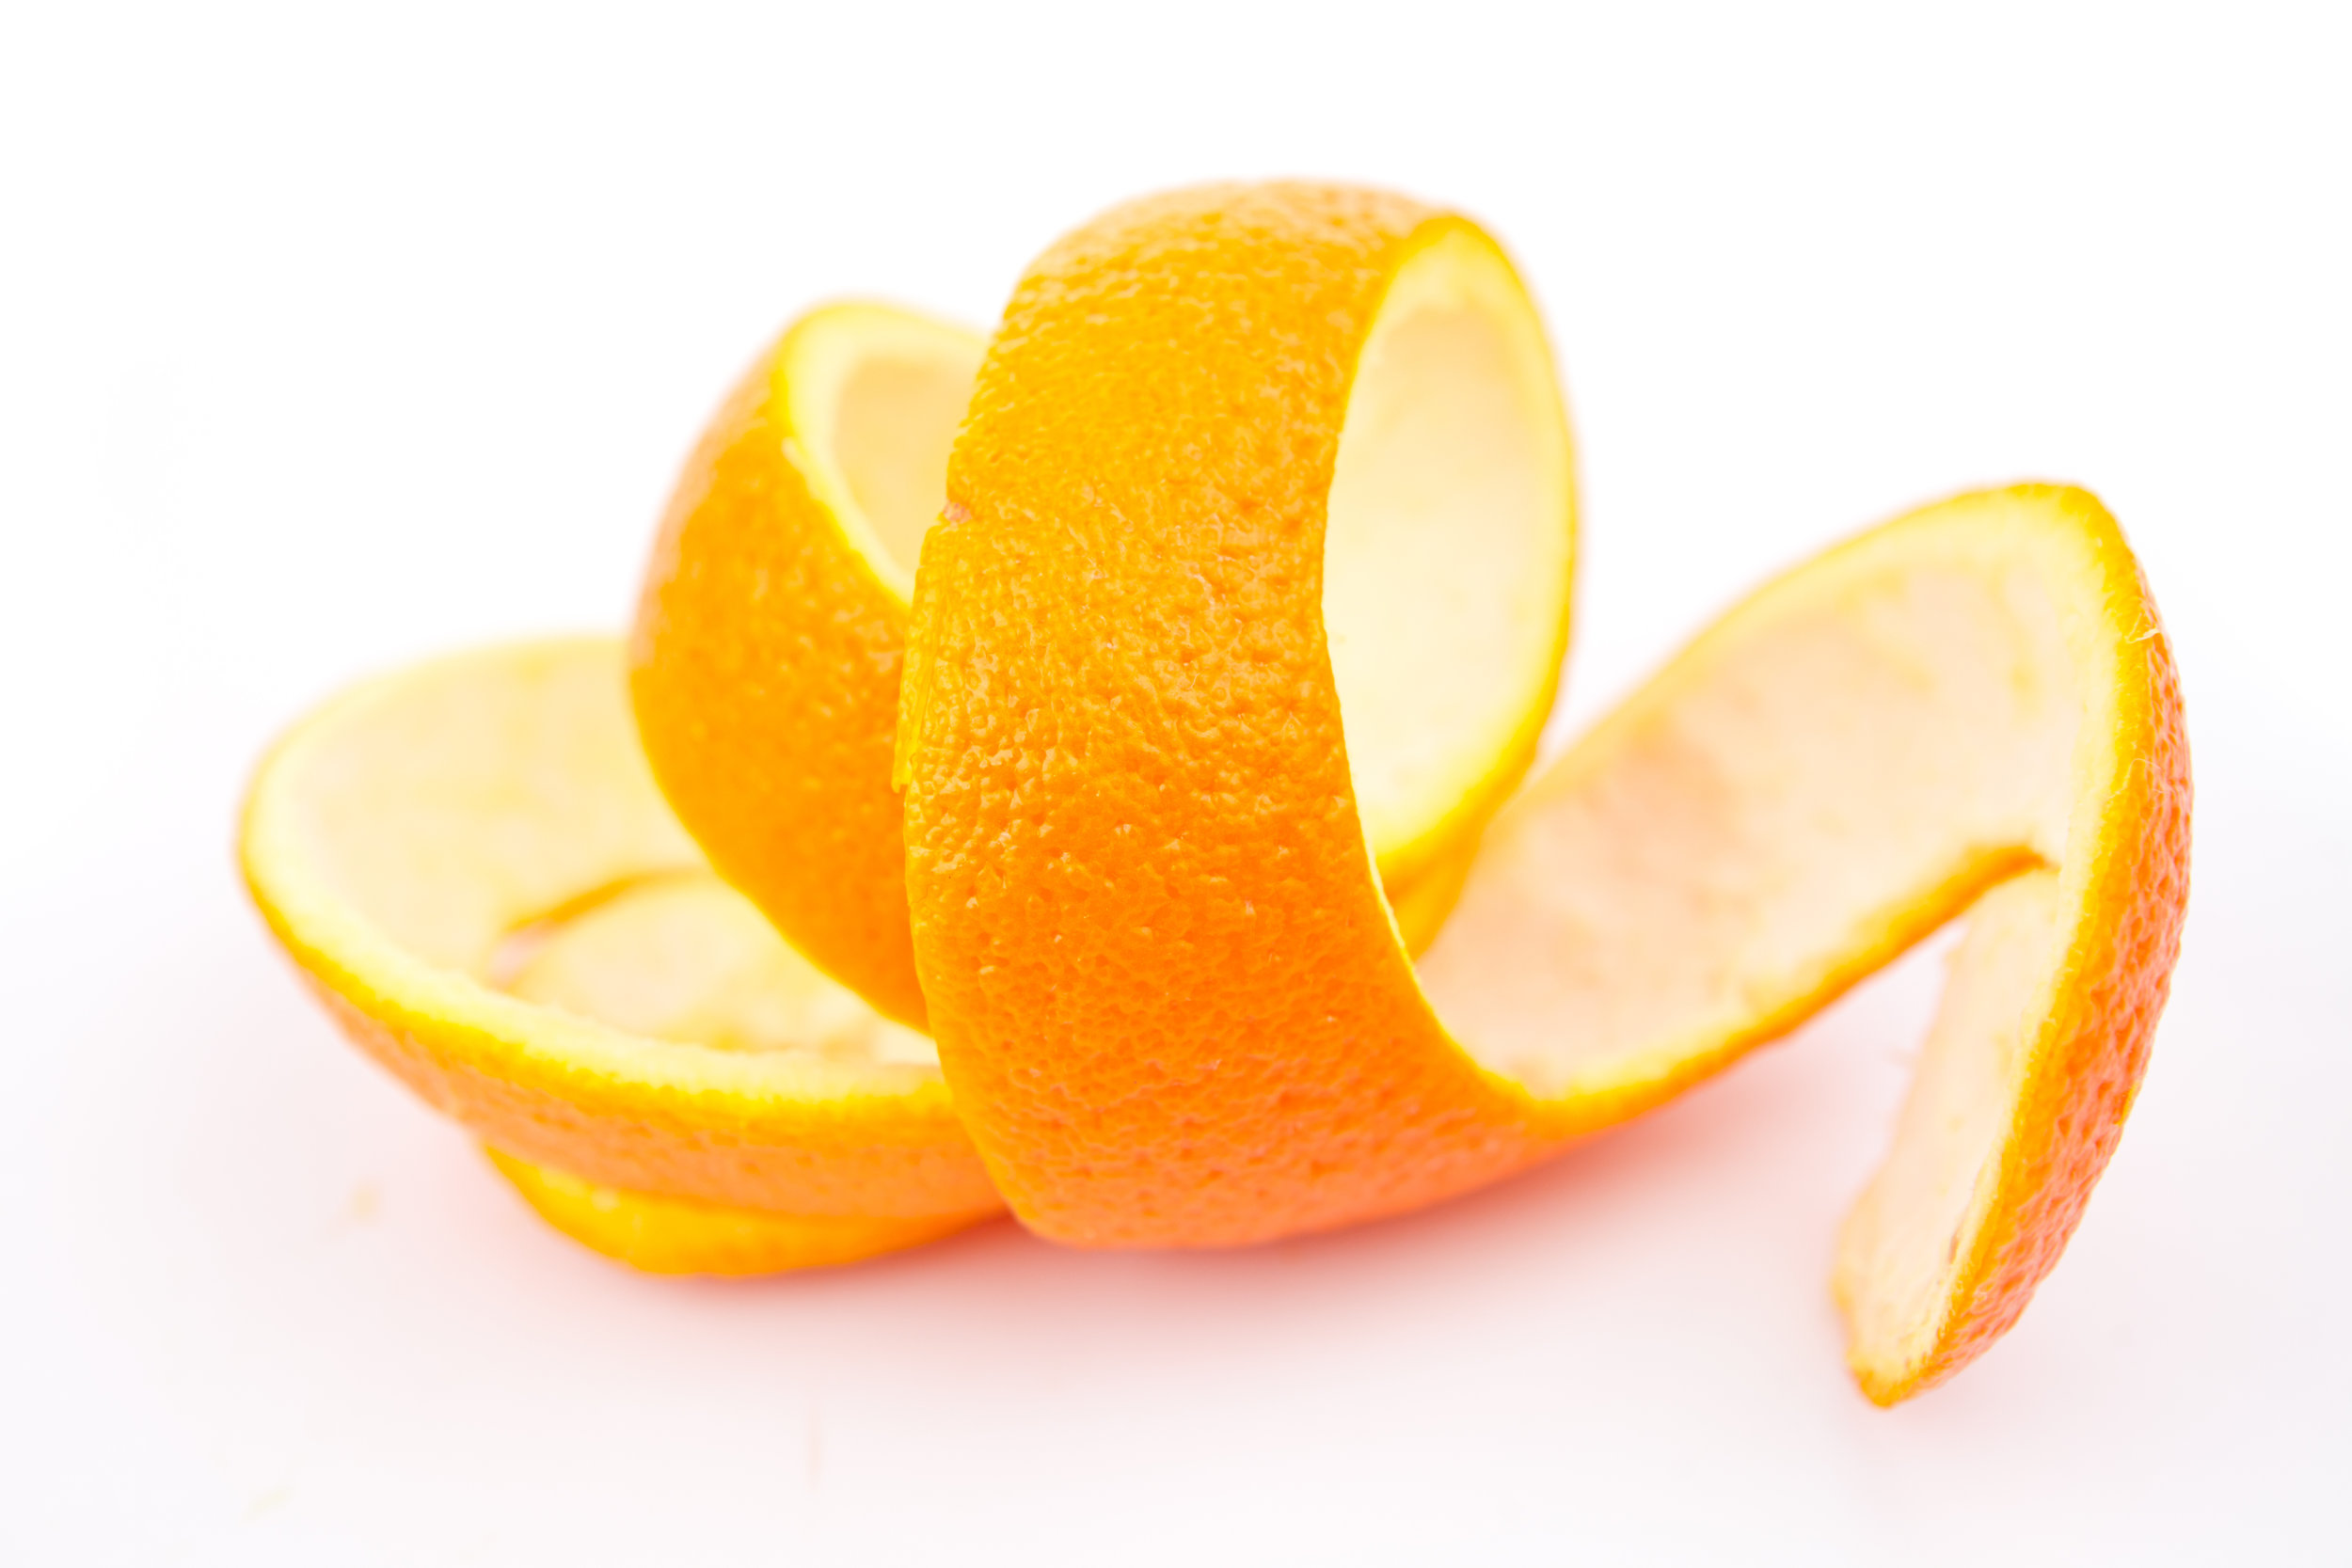 Organic New Zealand Orange Peel - Nothing beats hand picking oranges from an old tree that you planted as a child well almost nothing, our gin's pretty exciting just like the organic oranges we hand peel in order to bring you the best citrus taste around. Just another way we a committed to quality over quantity.